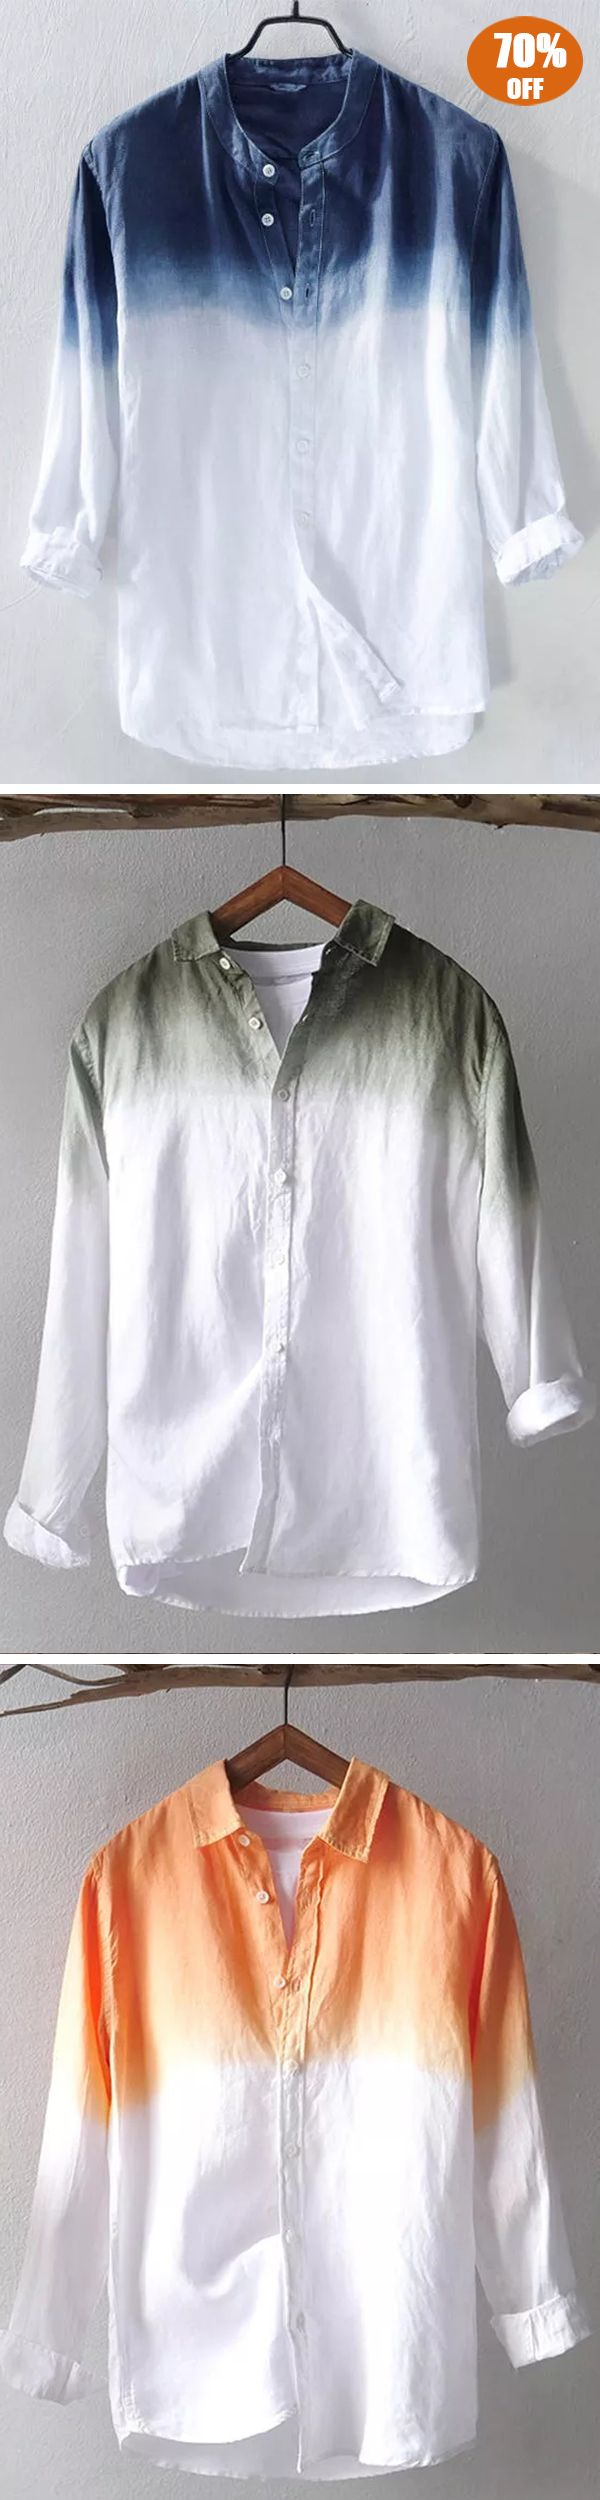 Gradient Color Cotton Breathable Trendy Shirts images